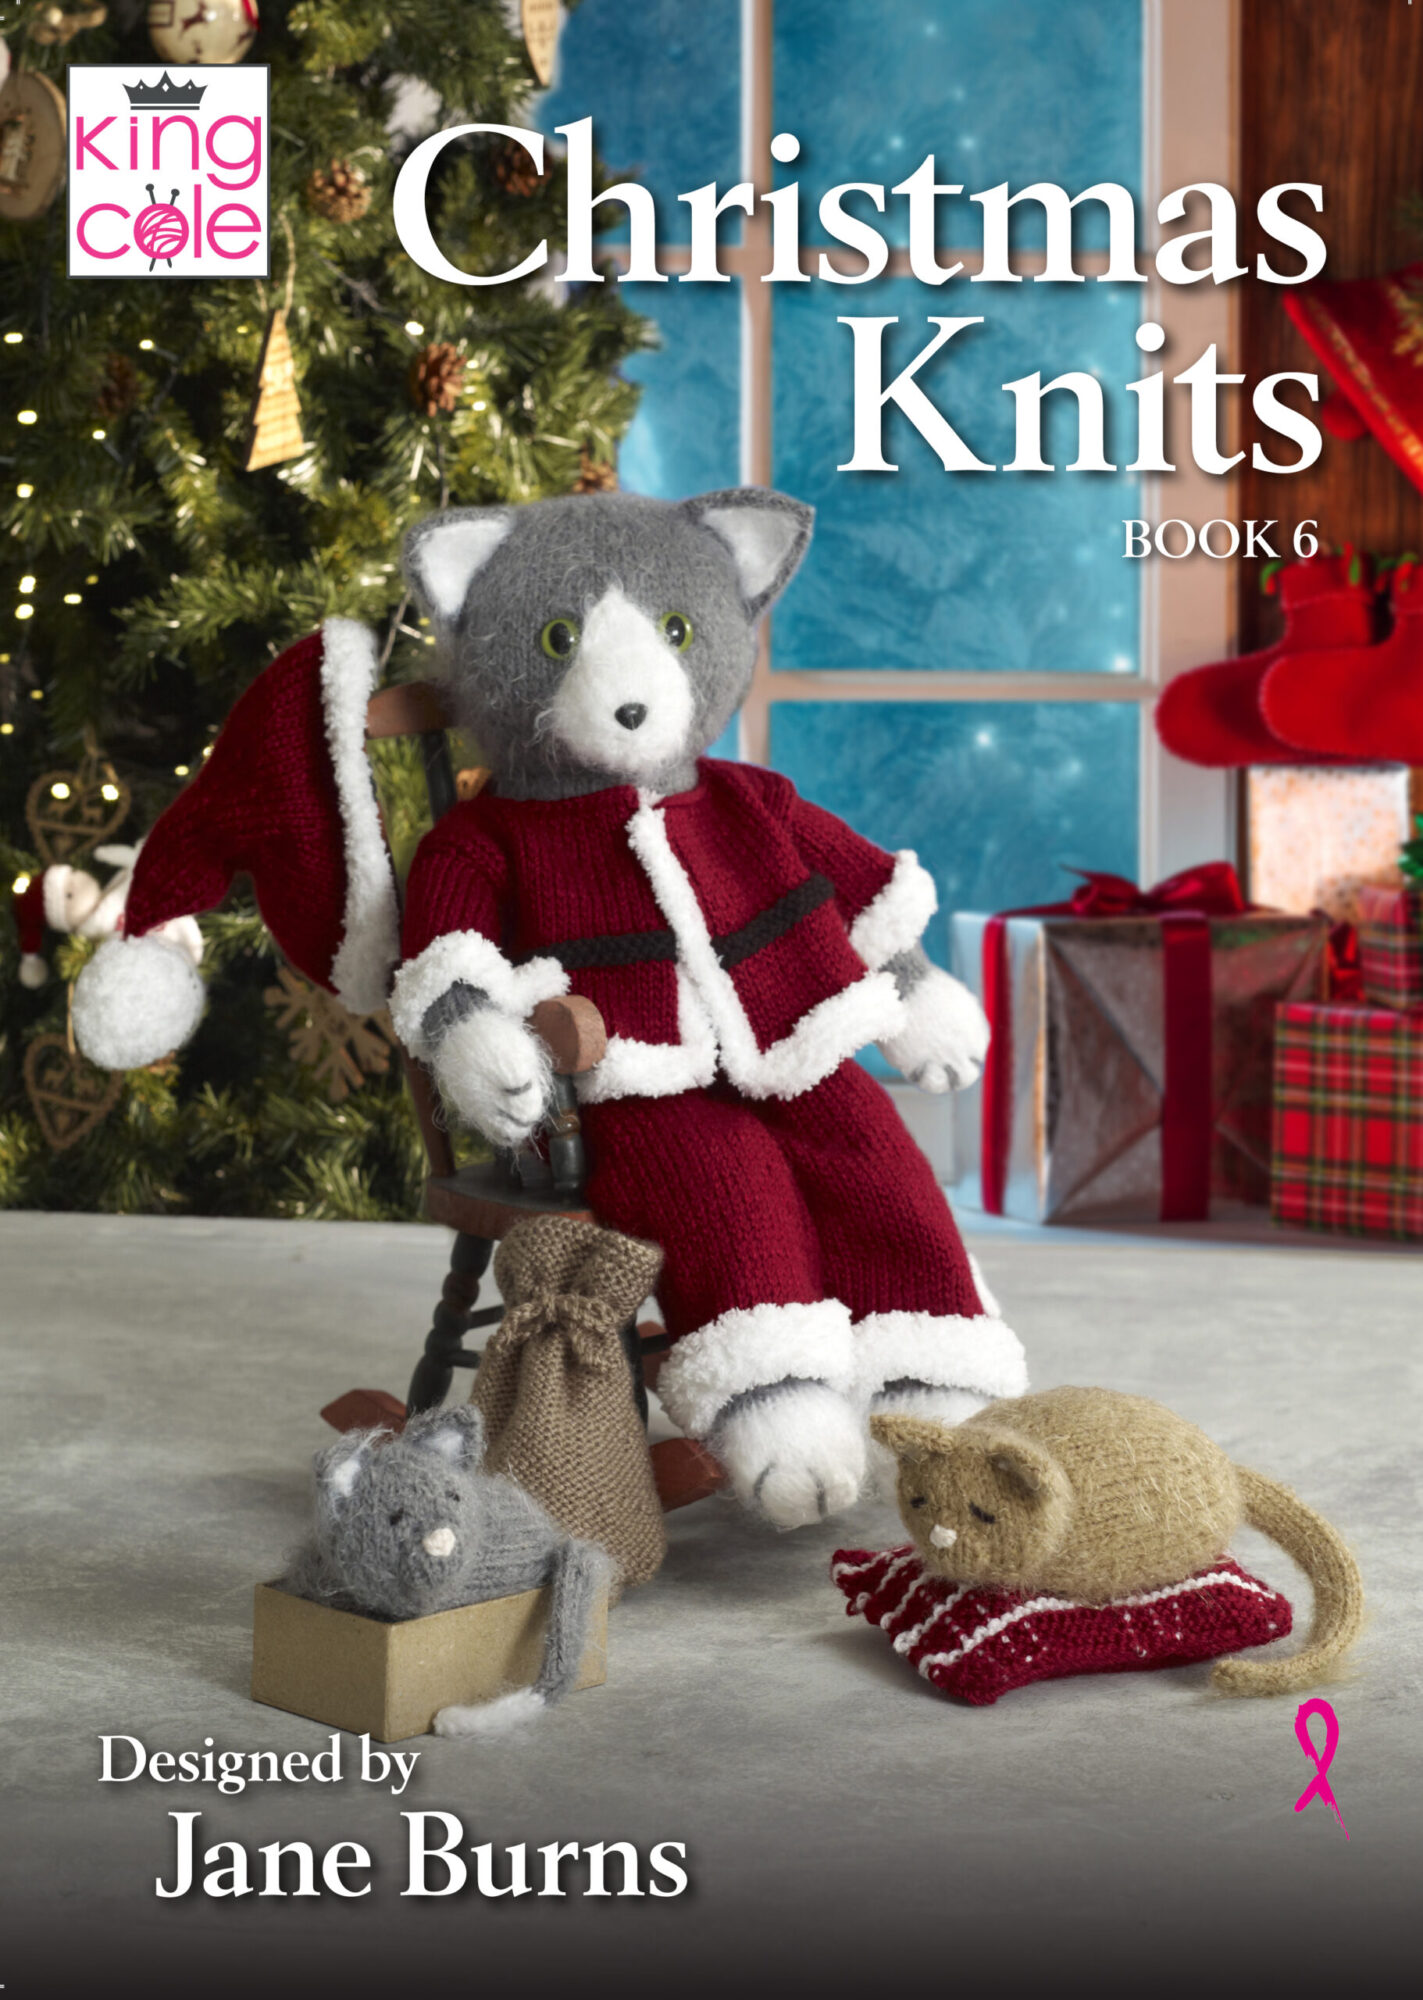 King Cole Christmas Knits – Book 6 product image